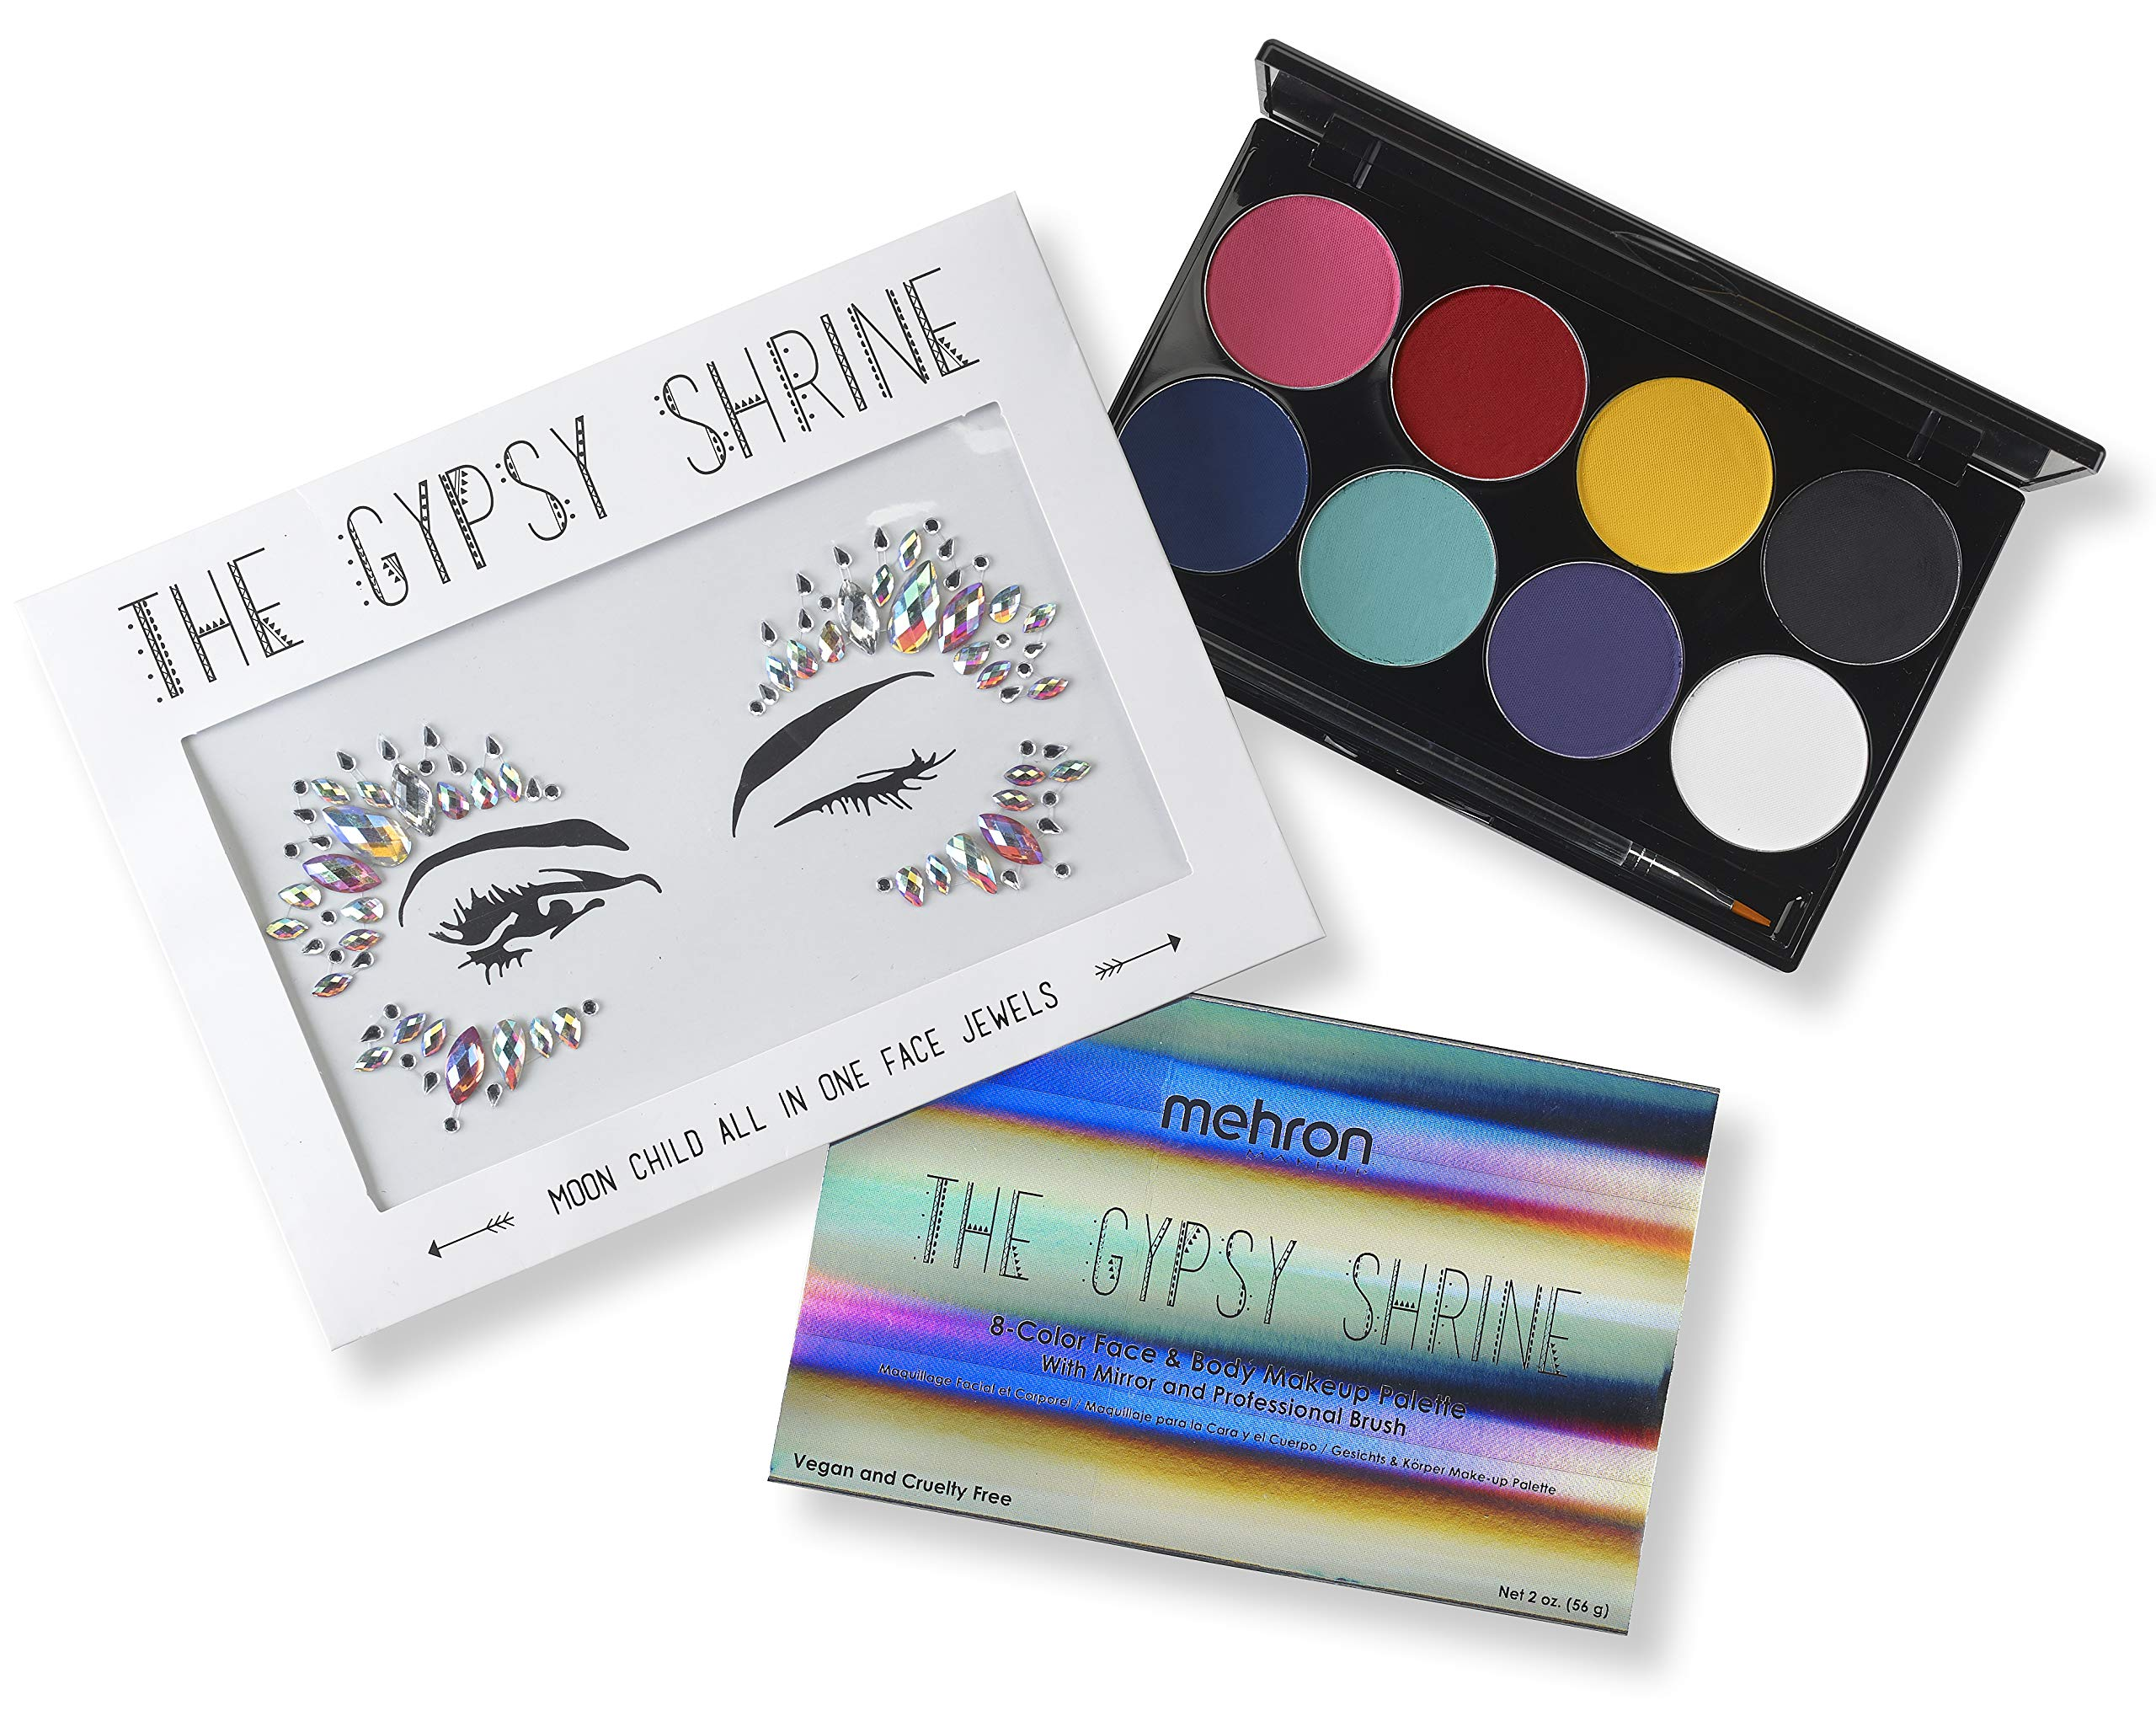 Mehron Makeup Face & Body Makeup Palette with The Gypsy Shrine Jewel Collection (Moon Child)